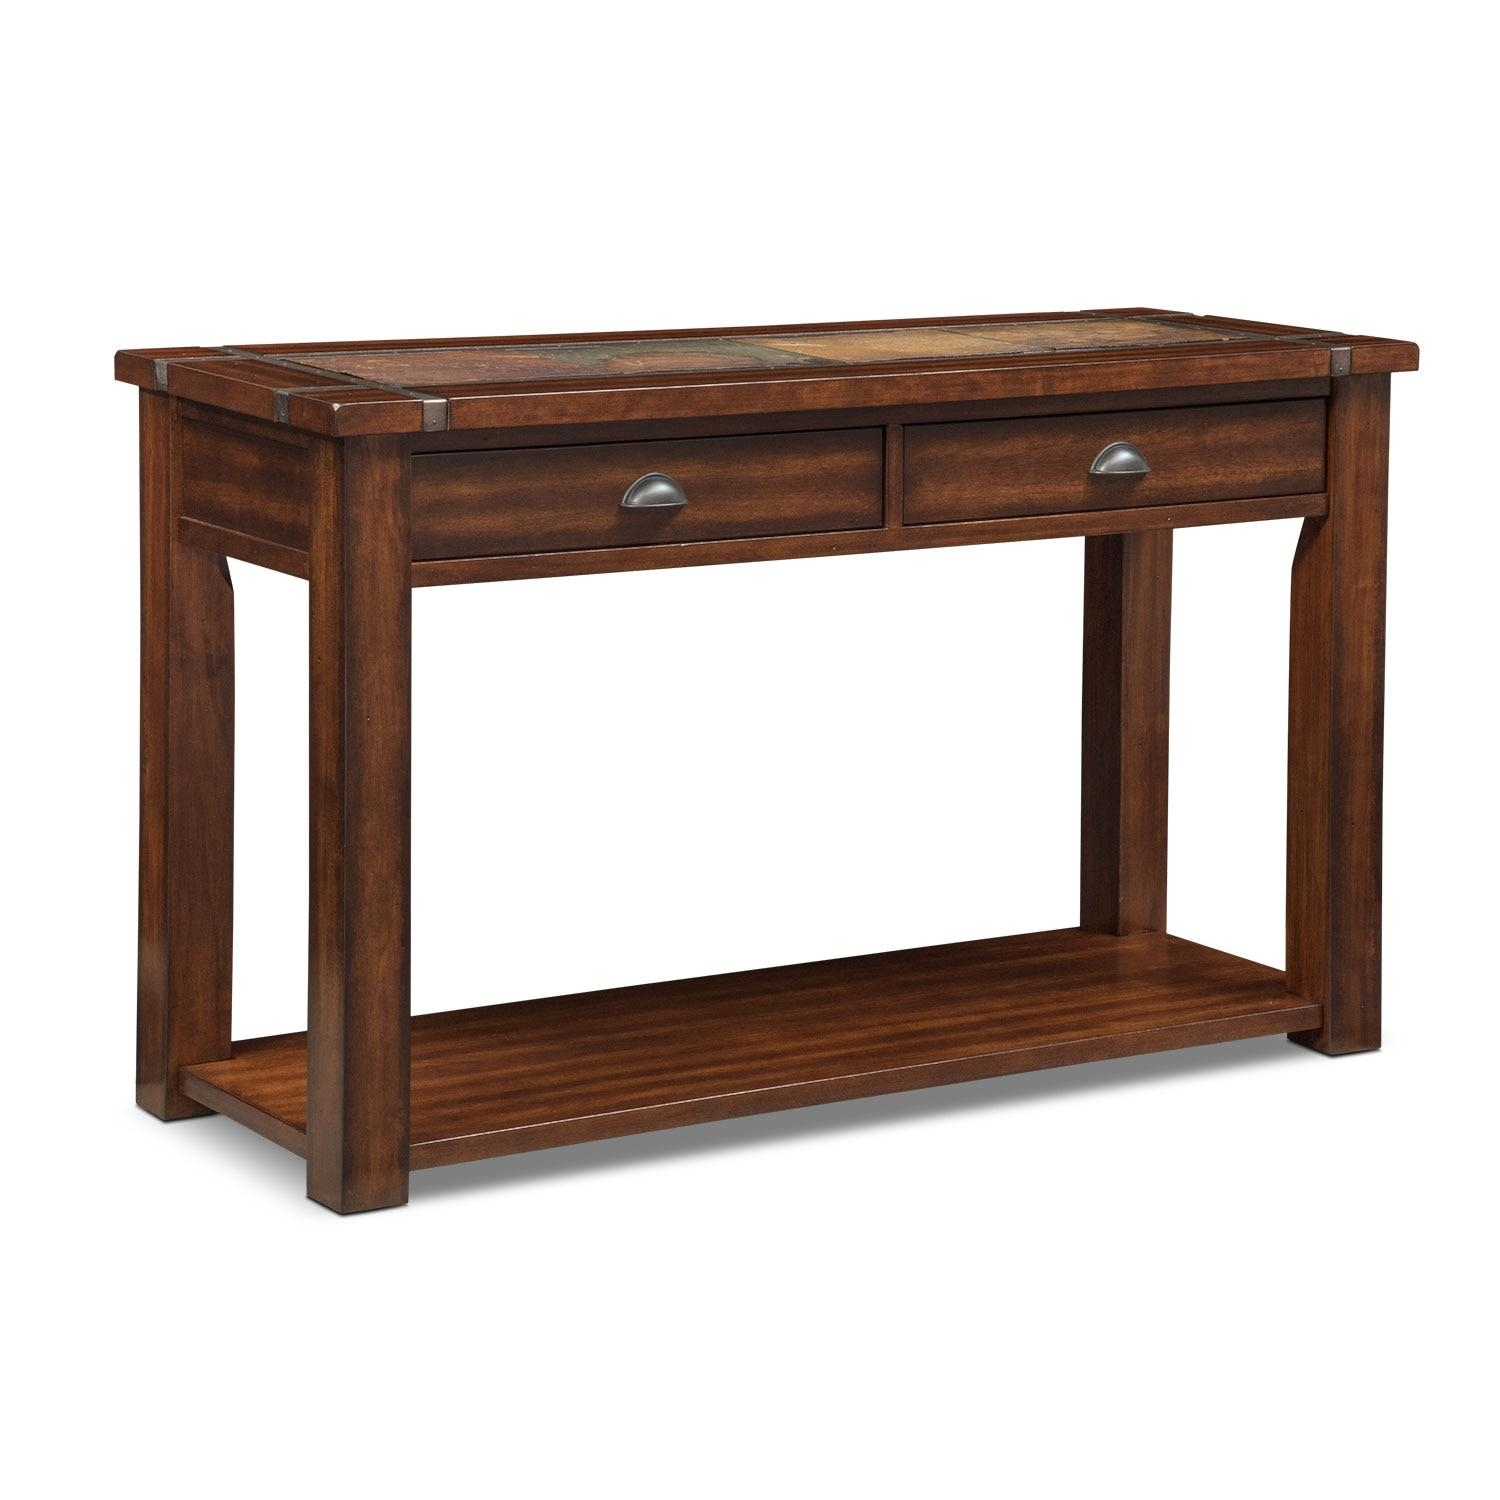 Slate Ridge Sofa Table – Cherry | Value City Furniture With Regard To Slate Sofa Tables (View 3 of 20)